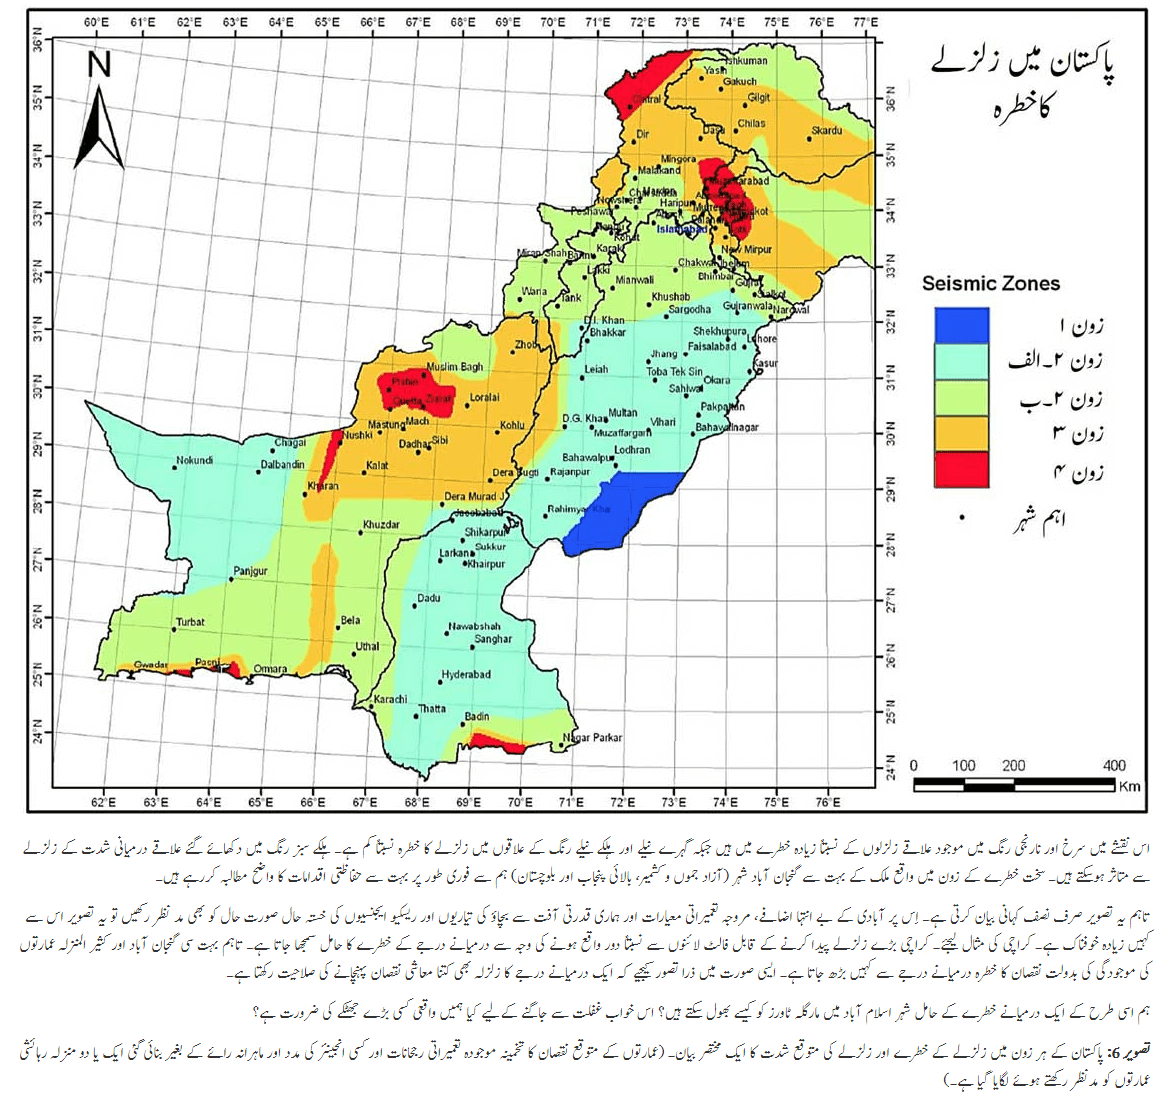 Earthquake Prediction! When will the next earthquake Happen?, we can not forget an incident which happened on 08 October 2005, the Northern Area of Pakistan was damaged badly. Without any warning, before any prediction, many thousand people while working, sleeping, students in schools, before they could understand ....... died 85000 lives and many million buildings, houses destroyed in a few seconds. Our earth is of contains 4 layers Crust, Mantle, Outer Core and Inner Core as shown below. Below in Urdu language we will try to teach those lay persons who want to understand the physical and natural factors behind the earthquakes. Pakistan is placed on three tectonic plates, i.e. Eastern Part of Pakistan is on Indian Plate, Western Part is on Eurasian Plate and while the North and West Part is on Arabian Plate. We also divided the Pakistan in 4 Zones where the danger of earthquake can happen with the different levels of loss and damages. With the development in all fields we should also develop the technology to remain save us from the loss and damages of earthquakes. In Pakistan, to face and to defeat the earthquakes we have to manage long term plans which is described in 4 points below in Urdu. In this article you will learn in Urdu about the Earthquakes and how we can save ourselves from loss.